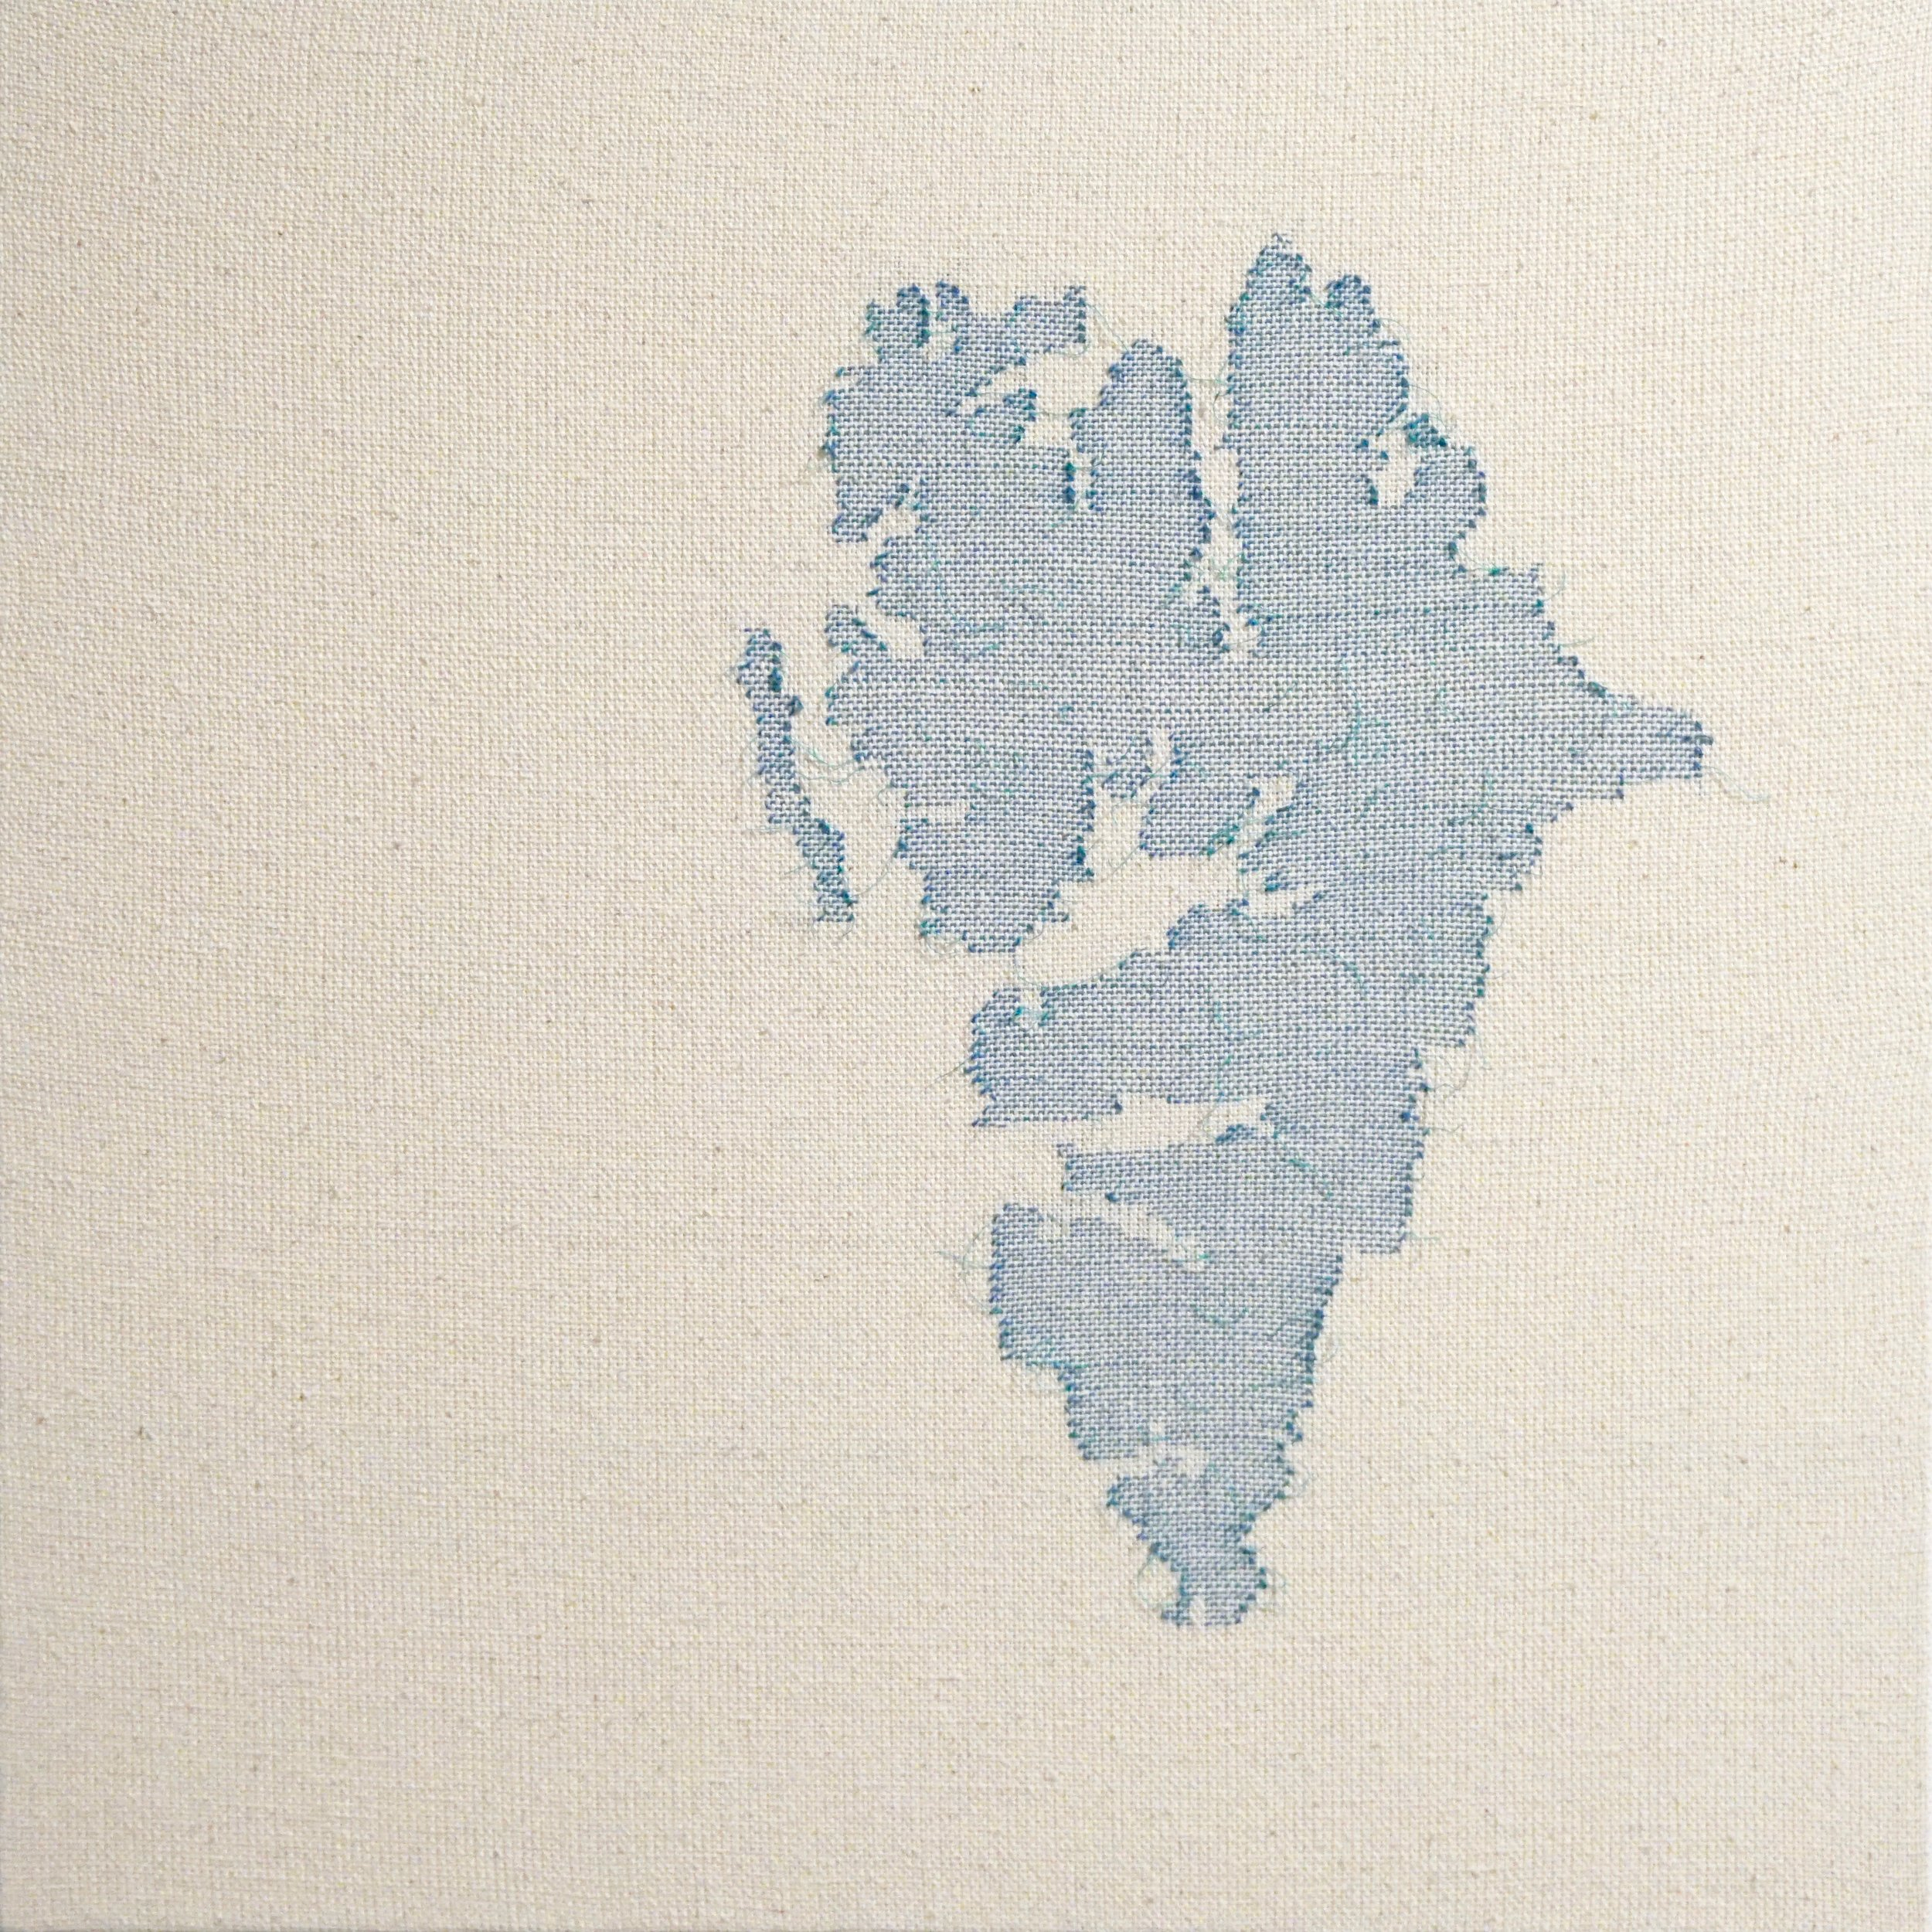 """Svalbard Plastic   2019  24"""" x 24""""  Handwoven cotton and found plastic rope"""